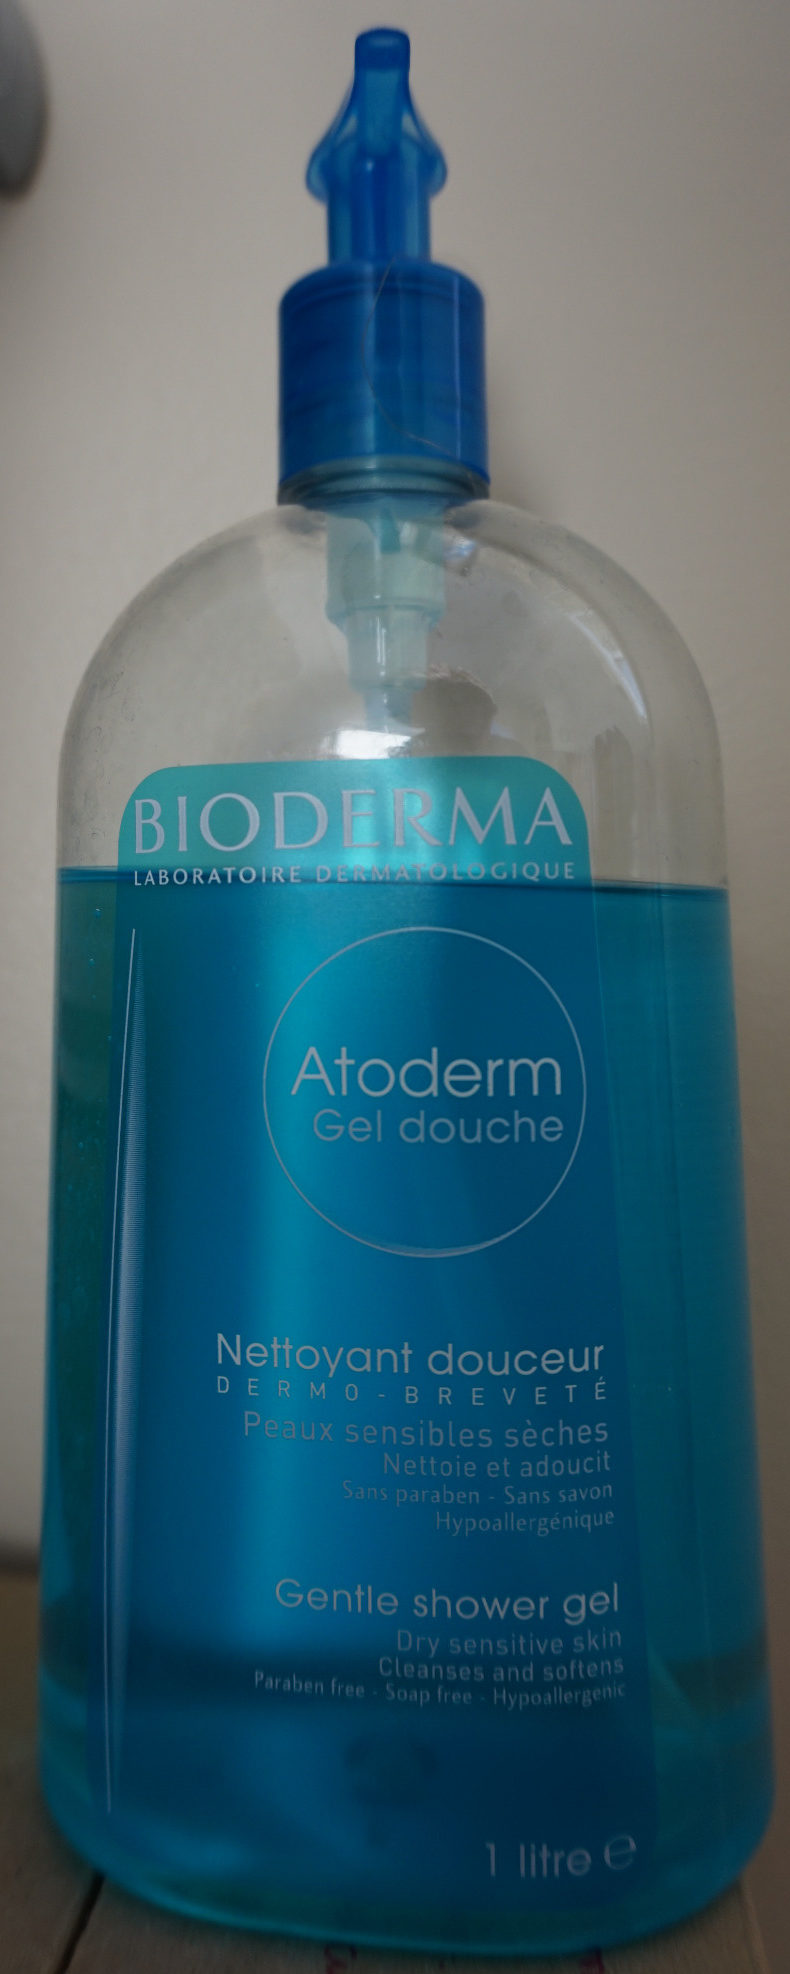 Bioderma - Atoderm Gel douche - Product